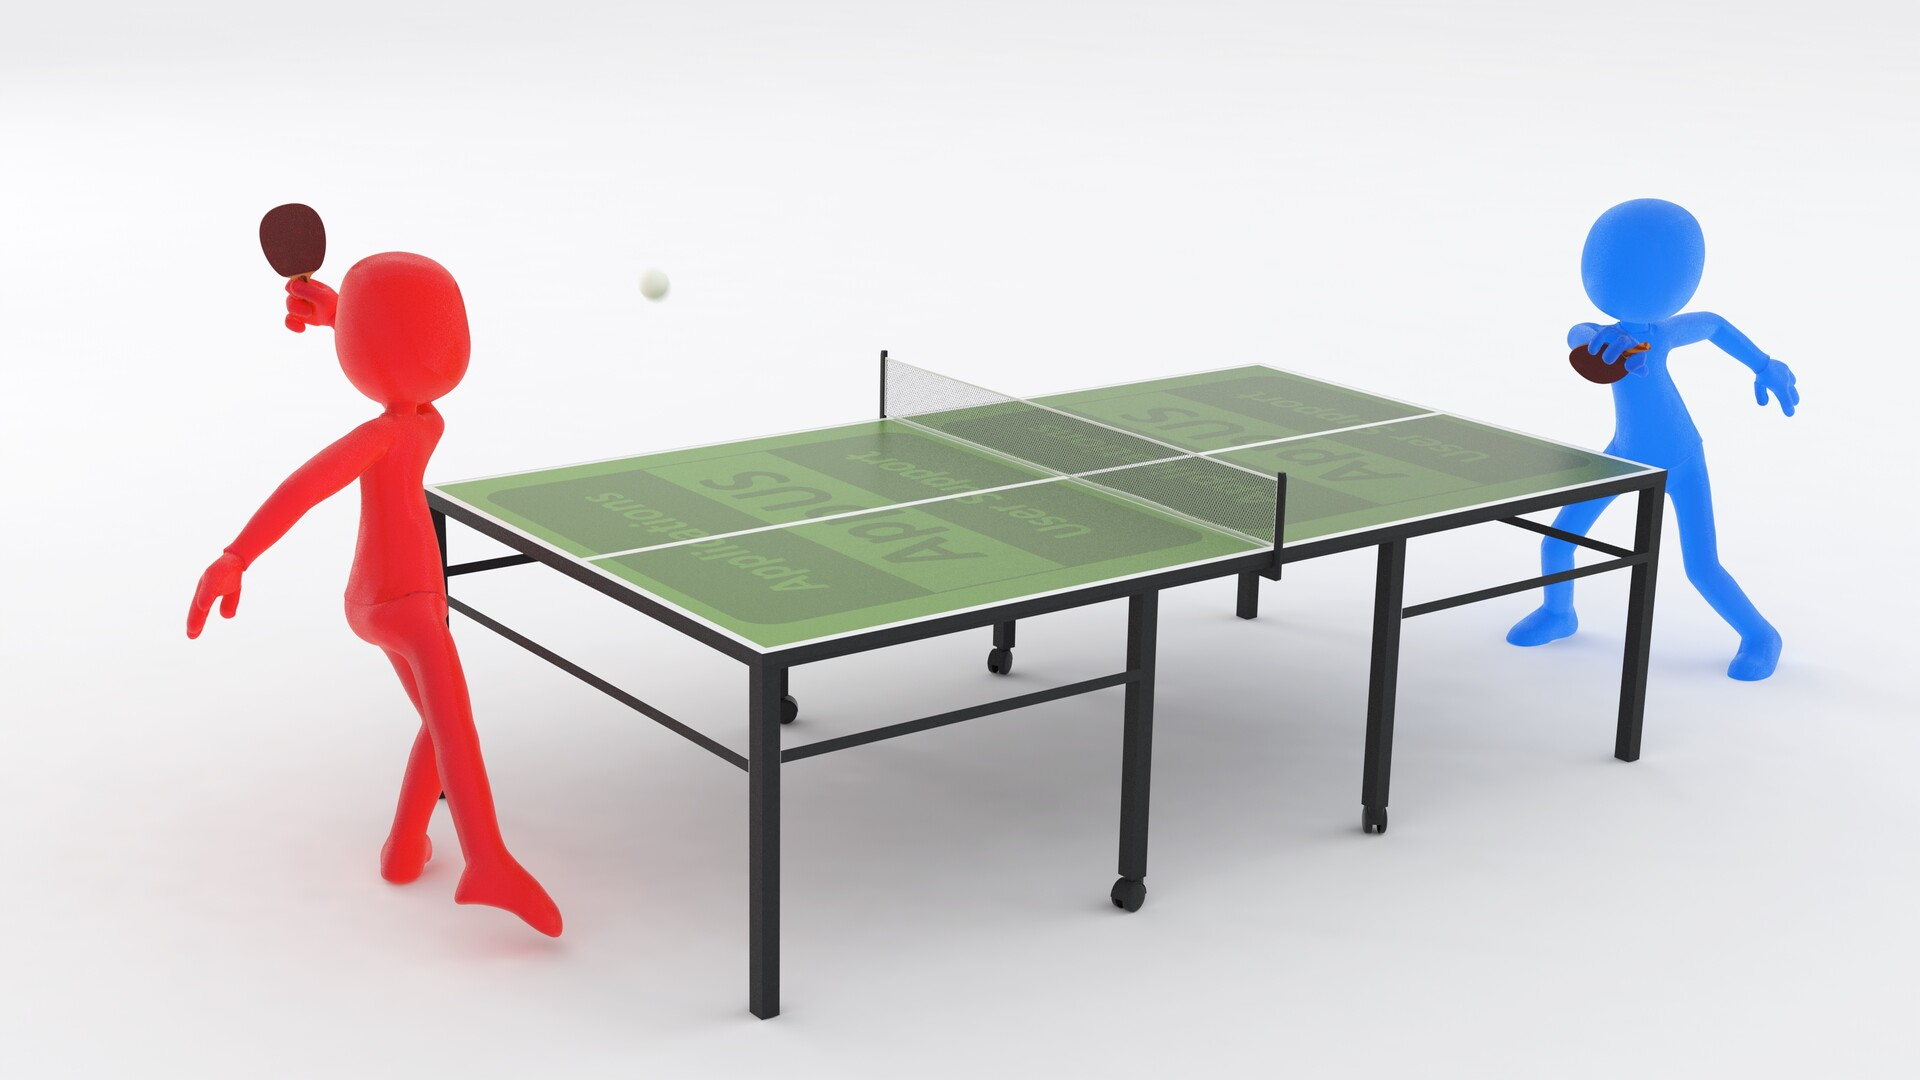 Blue gummy brand mascot and a red analogue using the client's table tennis facility - this image done as a moral effort for staff...